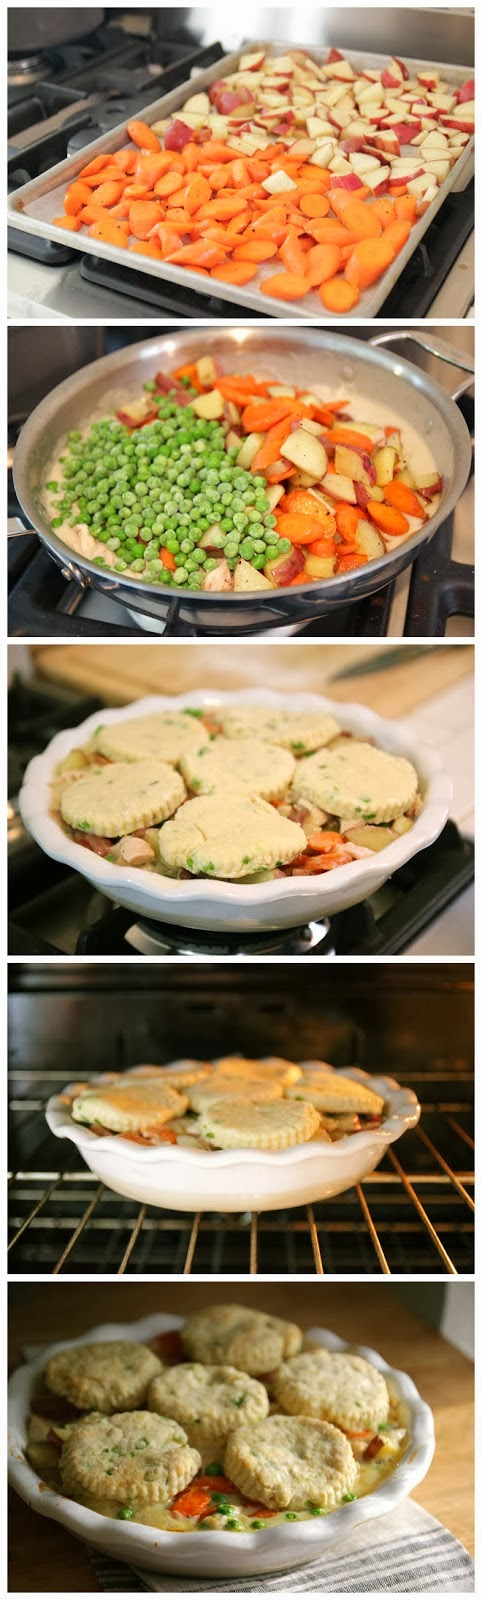 Chicken & Chive Biscuits Pot Pie